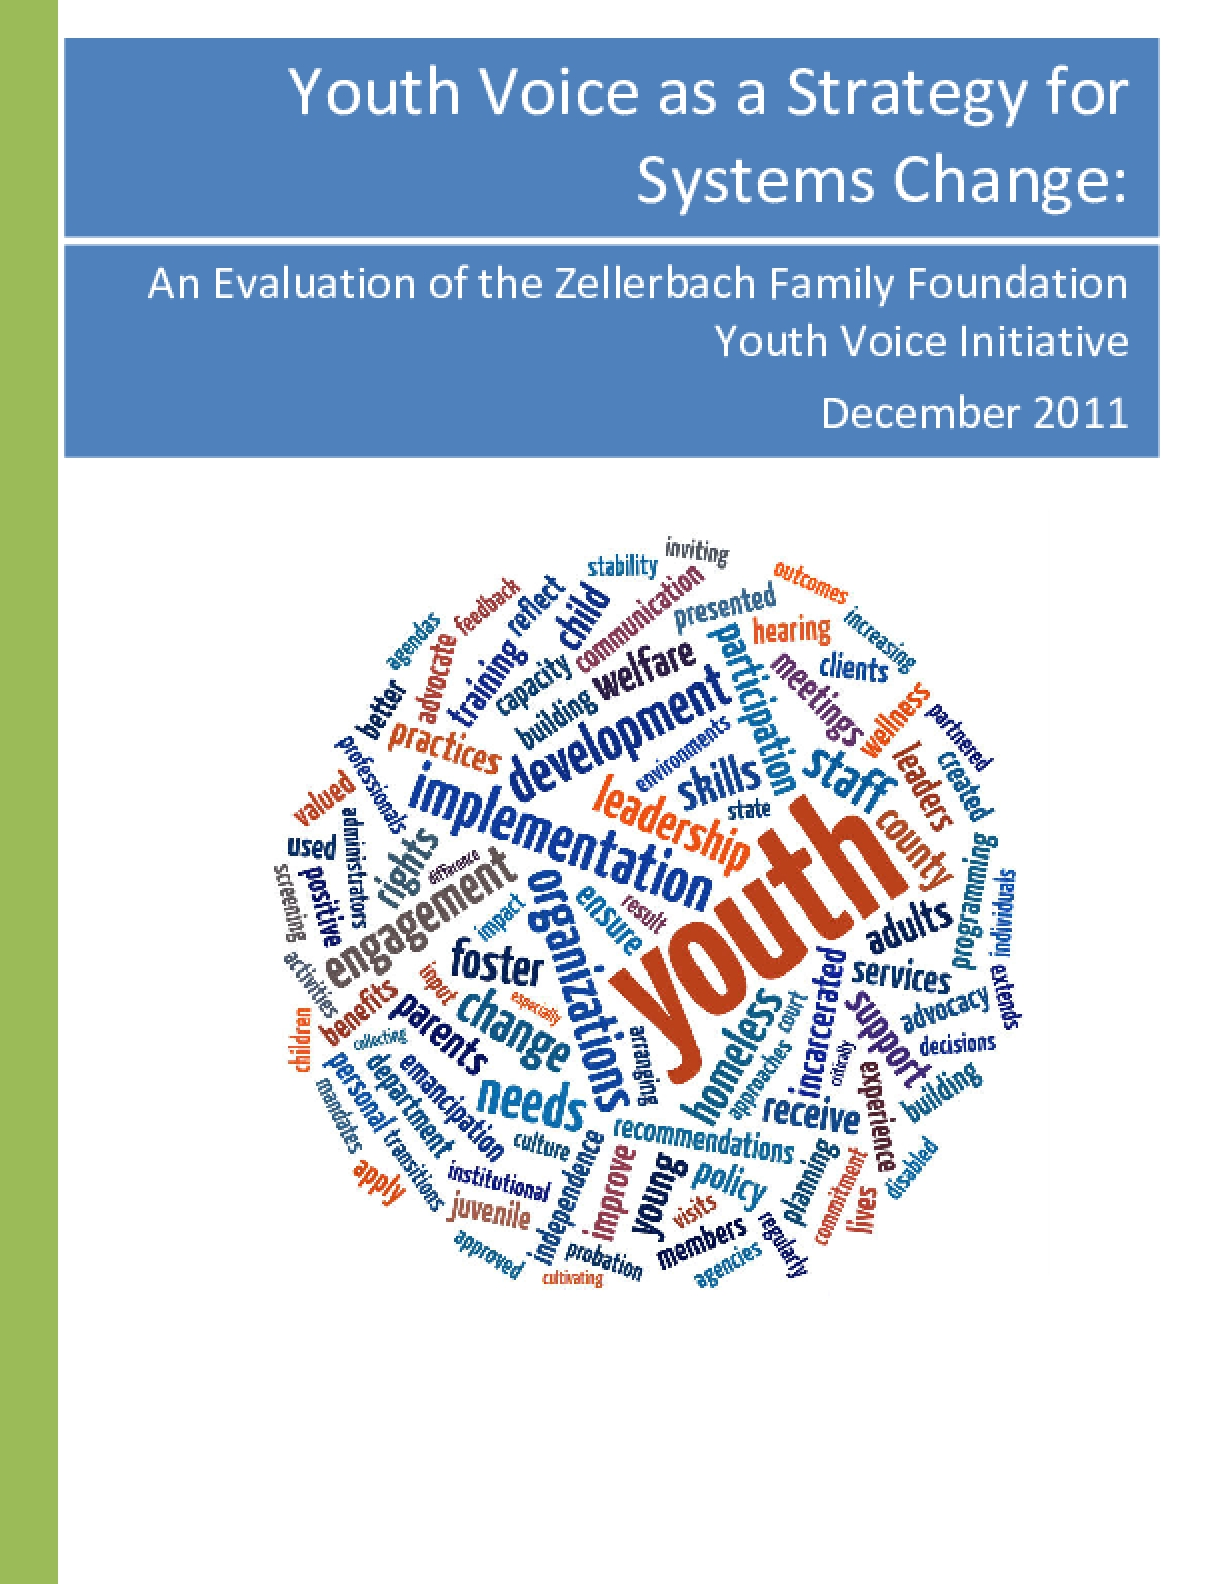 Youth Voice as a Strategy for Systems Change